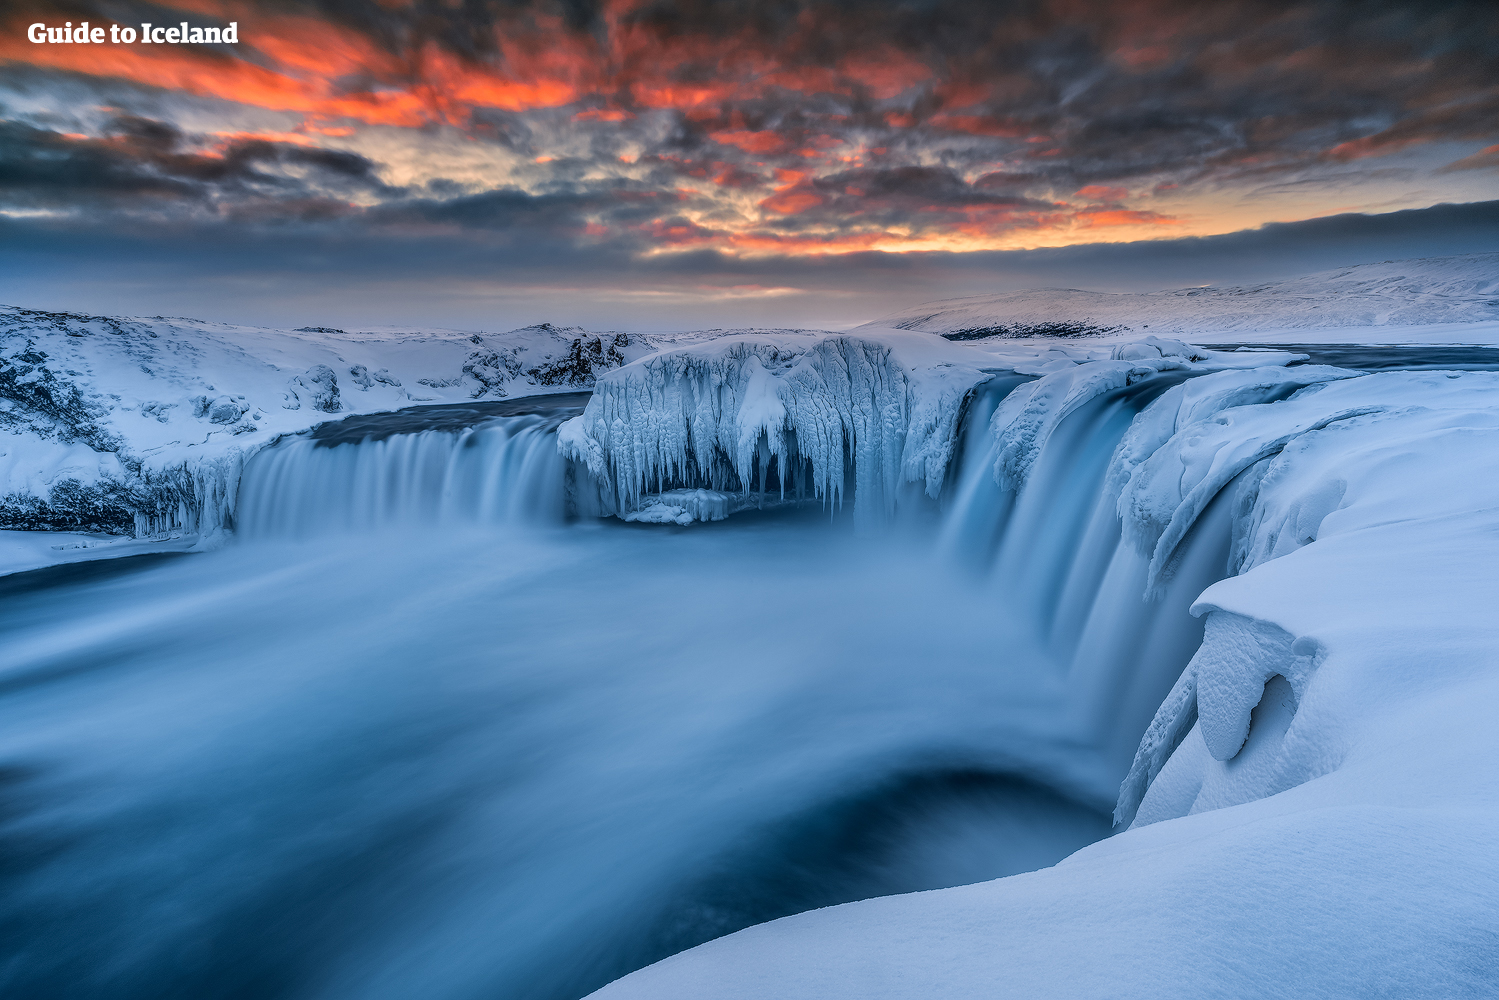 Iceland Winter Tour Package